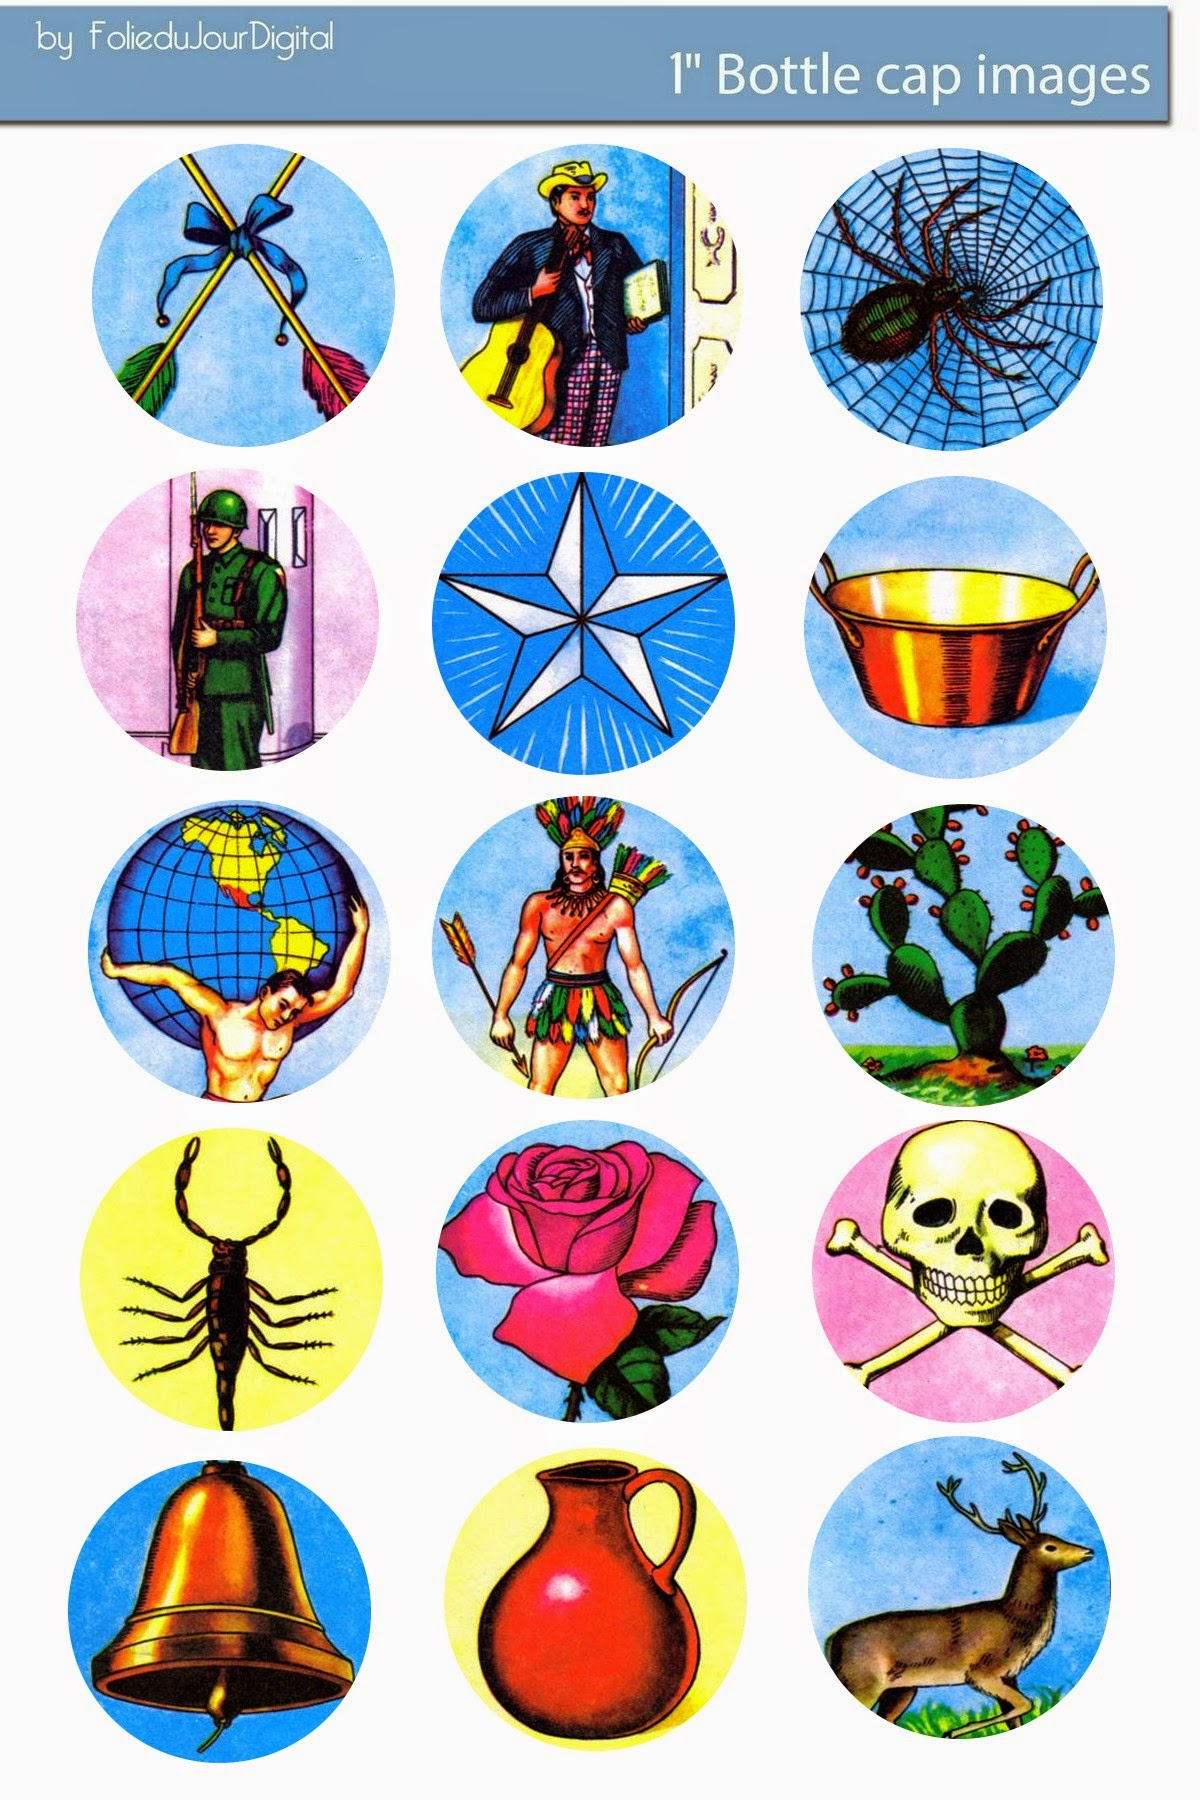 image about Printable Loteria Mexicana named No cost Bottle Cap Illustrations or photos: Mexicana Loteria Bingo Free of charge electronic